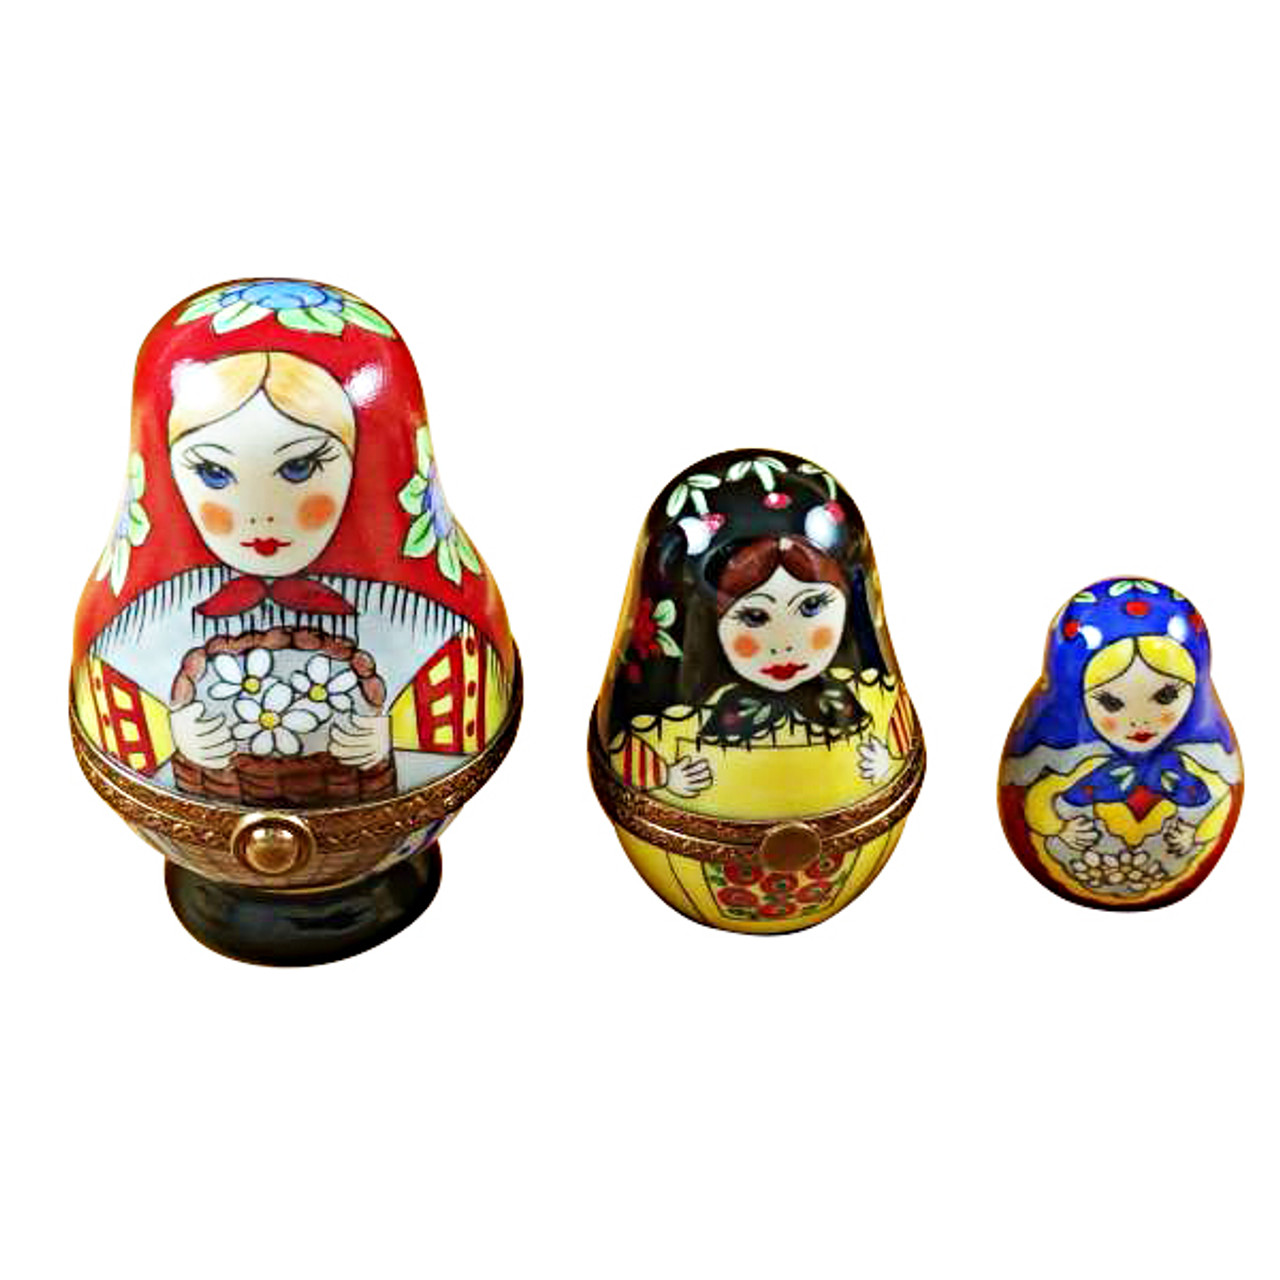 Russian Dolls S/3 Red Scarf Rochard Limoges Box